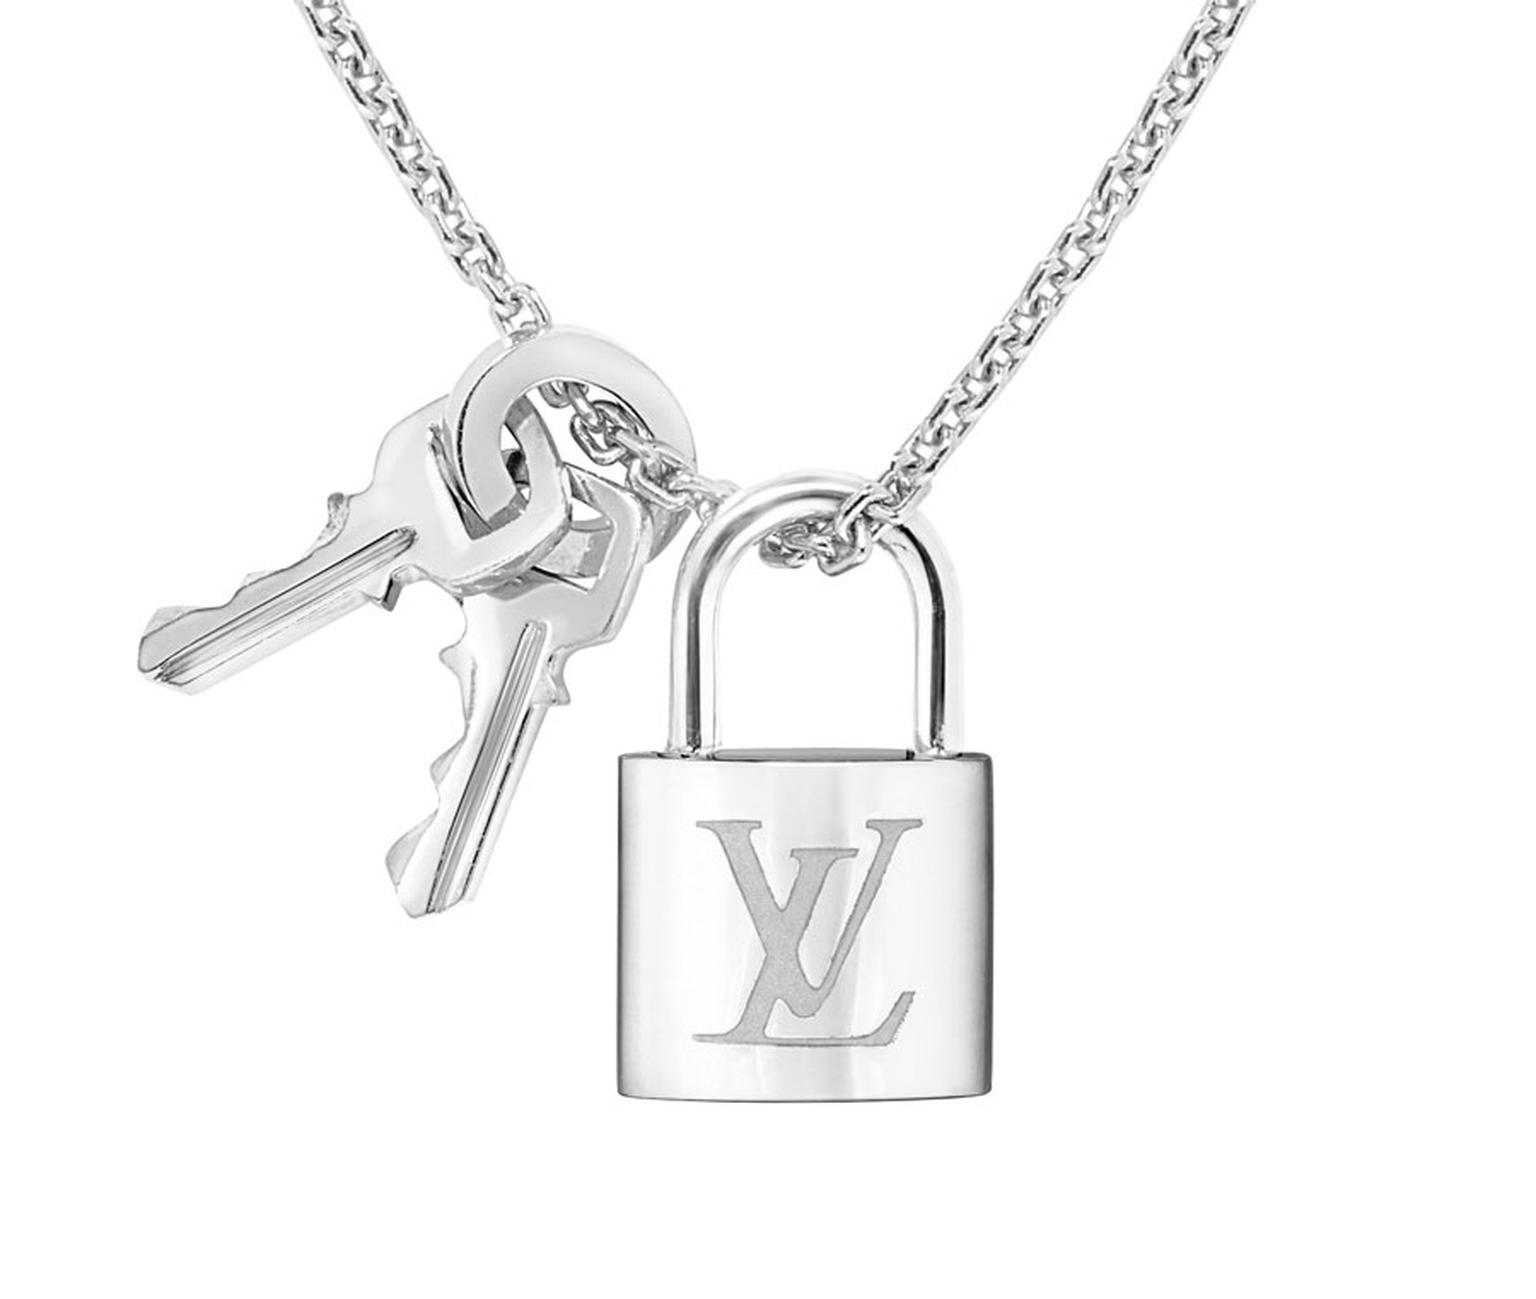 Louis-Vuitton-_PDT-LOCKIT-OG.jpg